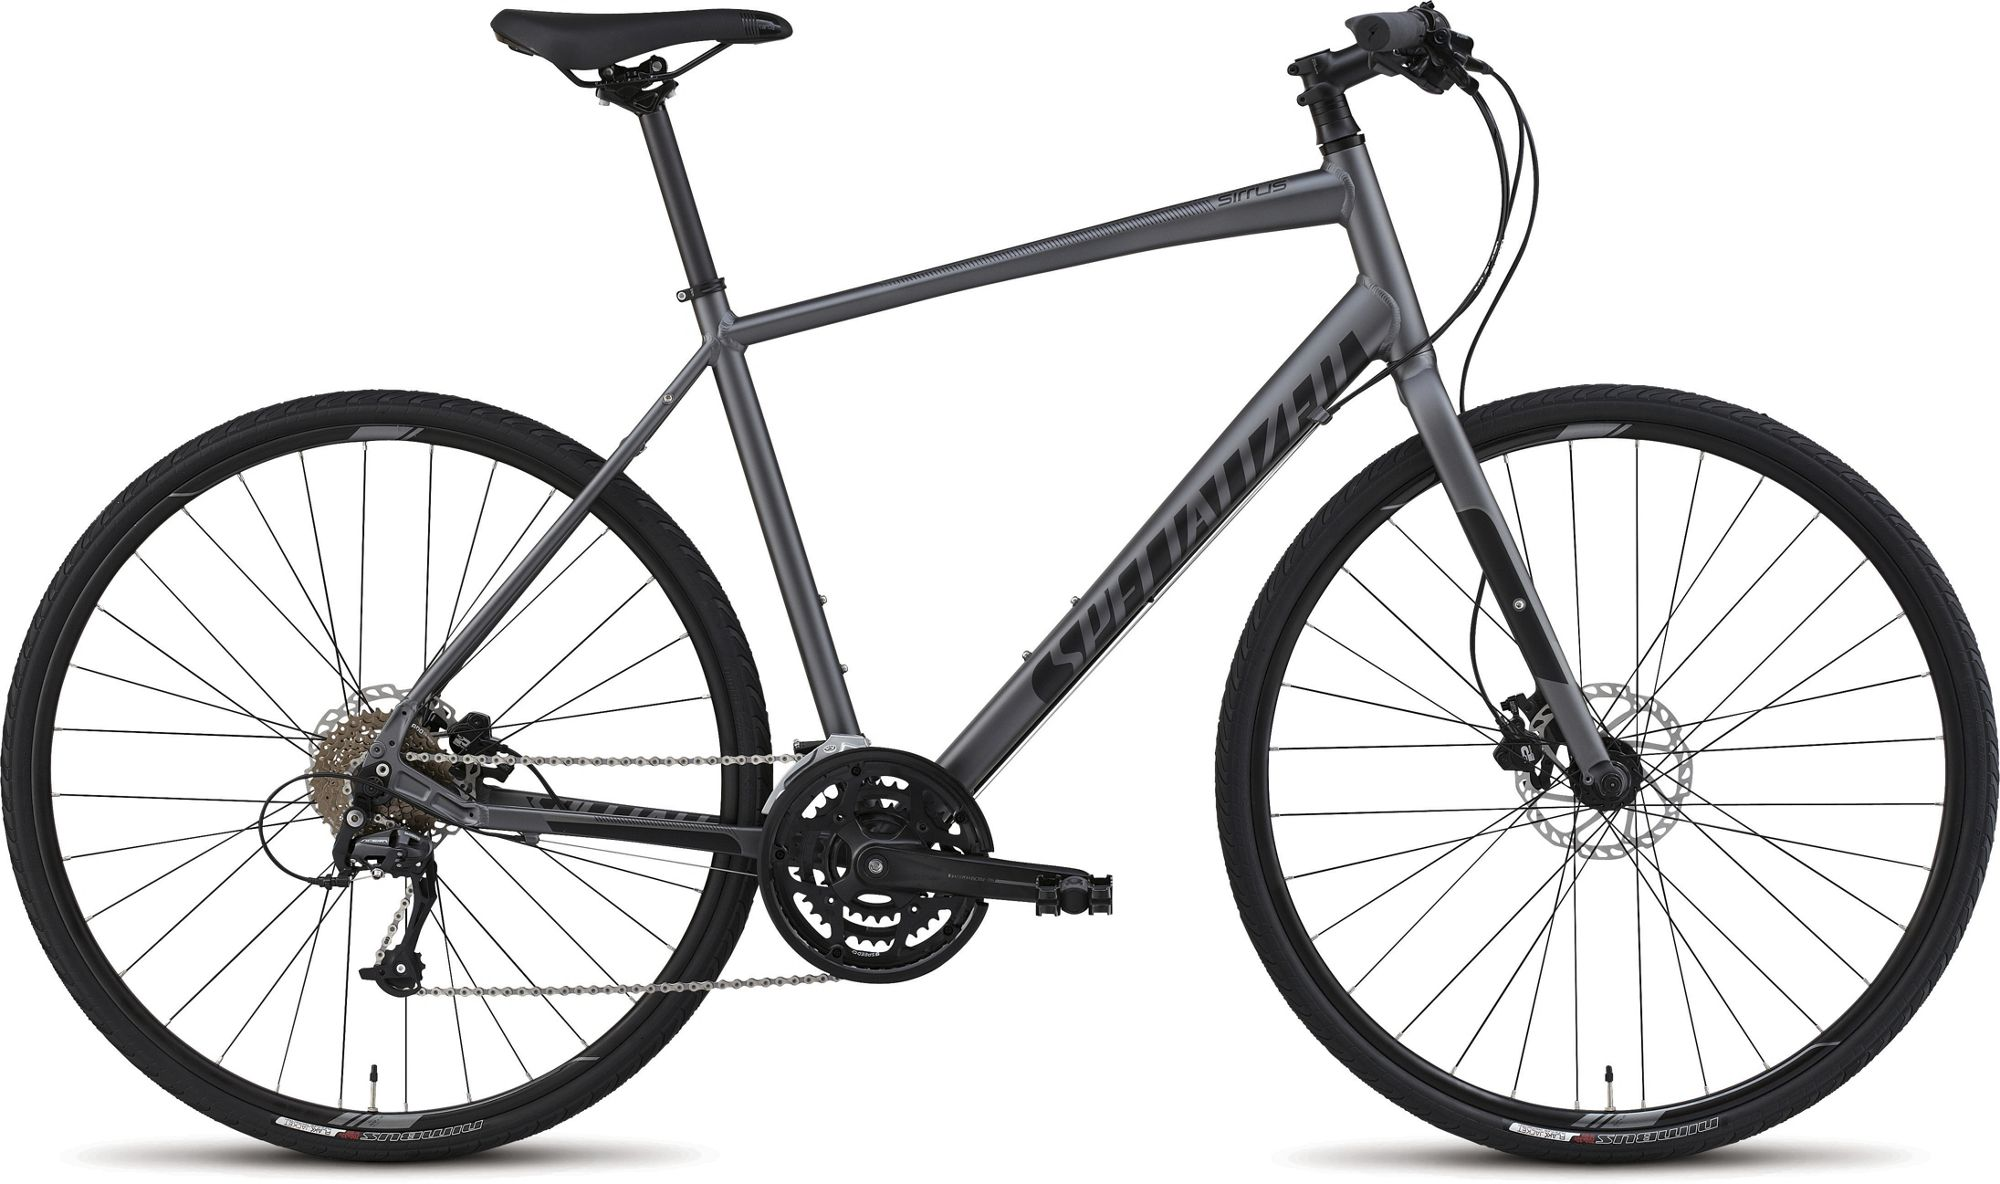 Pro Comp At Sport Review >> Specialized Sirrus Sport Disc 2015 review - The Bike List